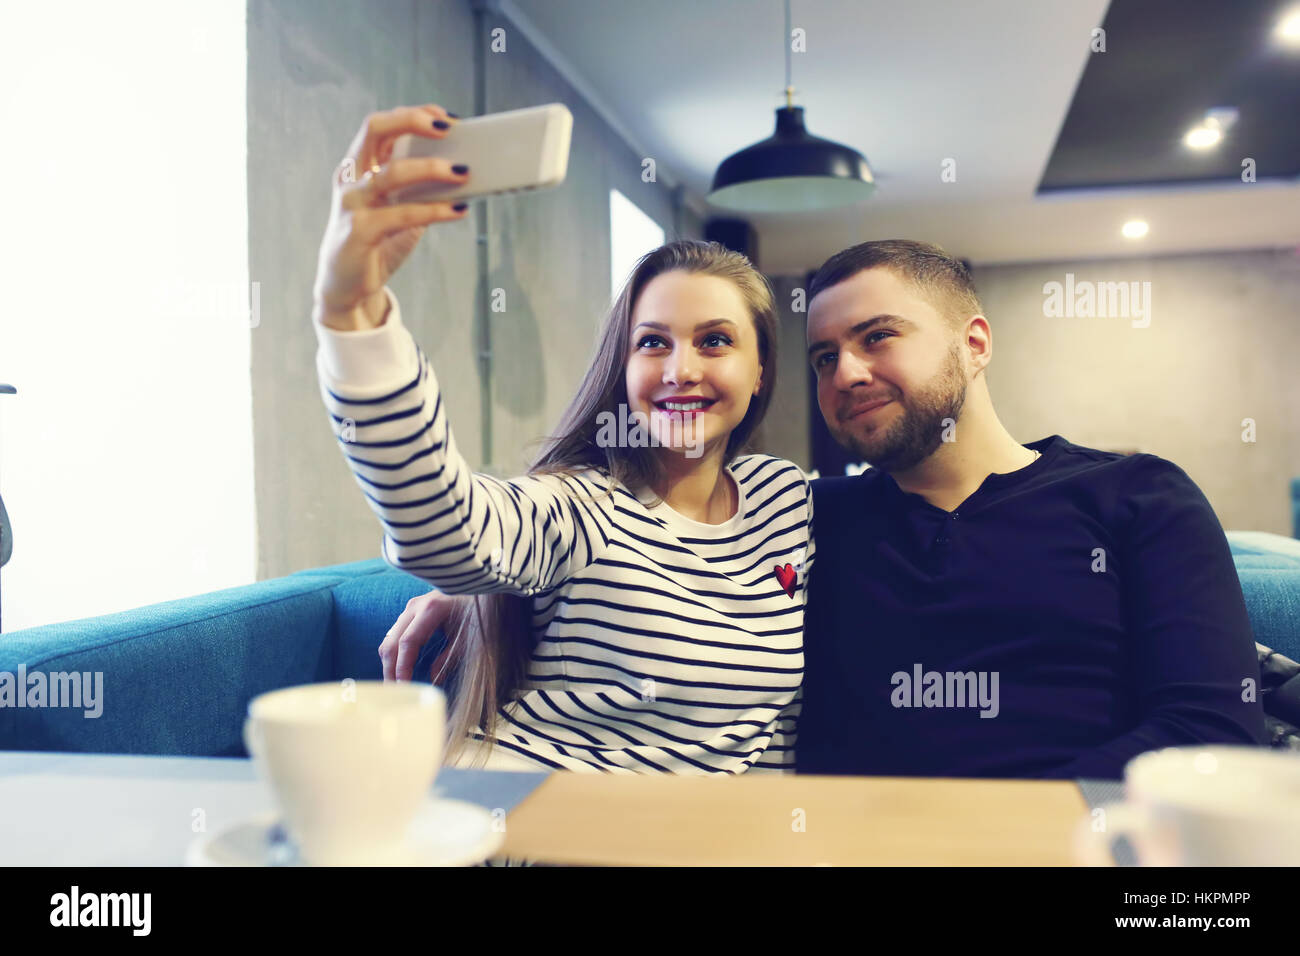 happy young couple with smartphone taking selfie at cafe in mall. sale, shopping, consumerism, technology and people - Stock Image